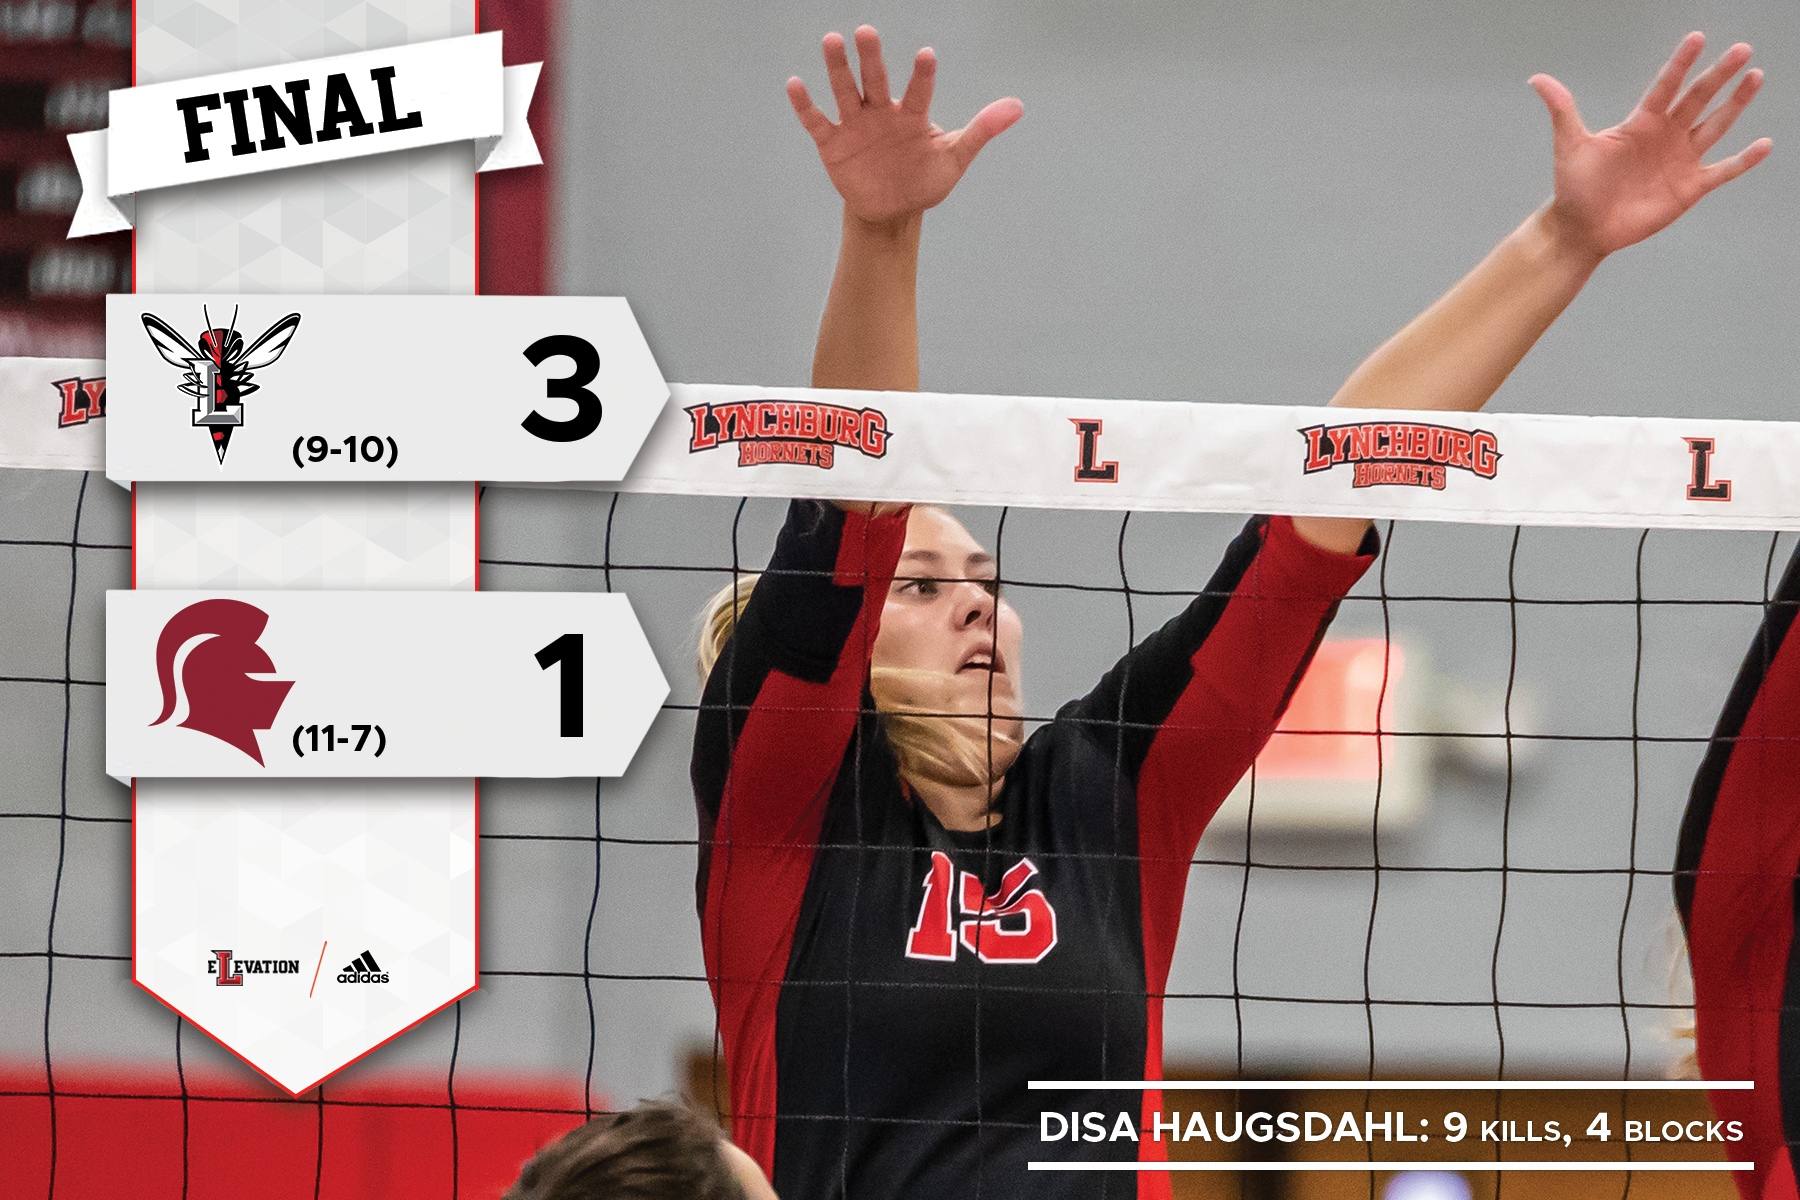 Disa Haugsdahl jumps on the block. Graphic showing 3-1 final score.